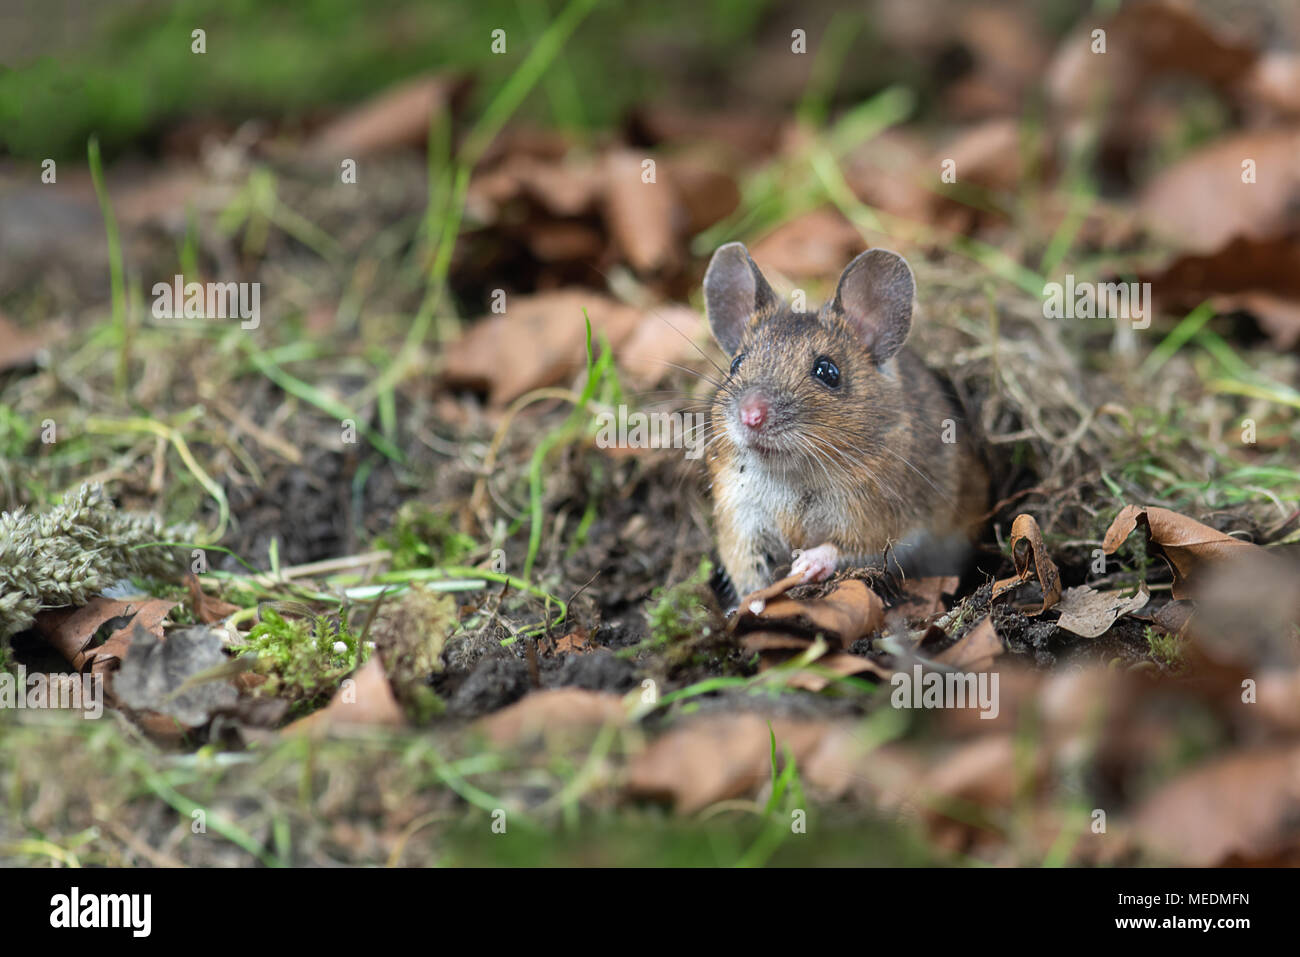 quietly sitting on the forest floor and looking alert emerging from the fauna is this wood mouse Apodemus sylvaticuse which  is a common rodent from E - Stock Image